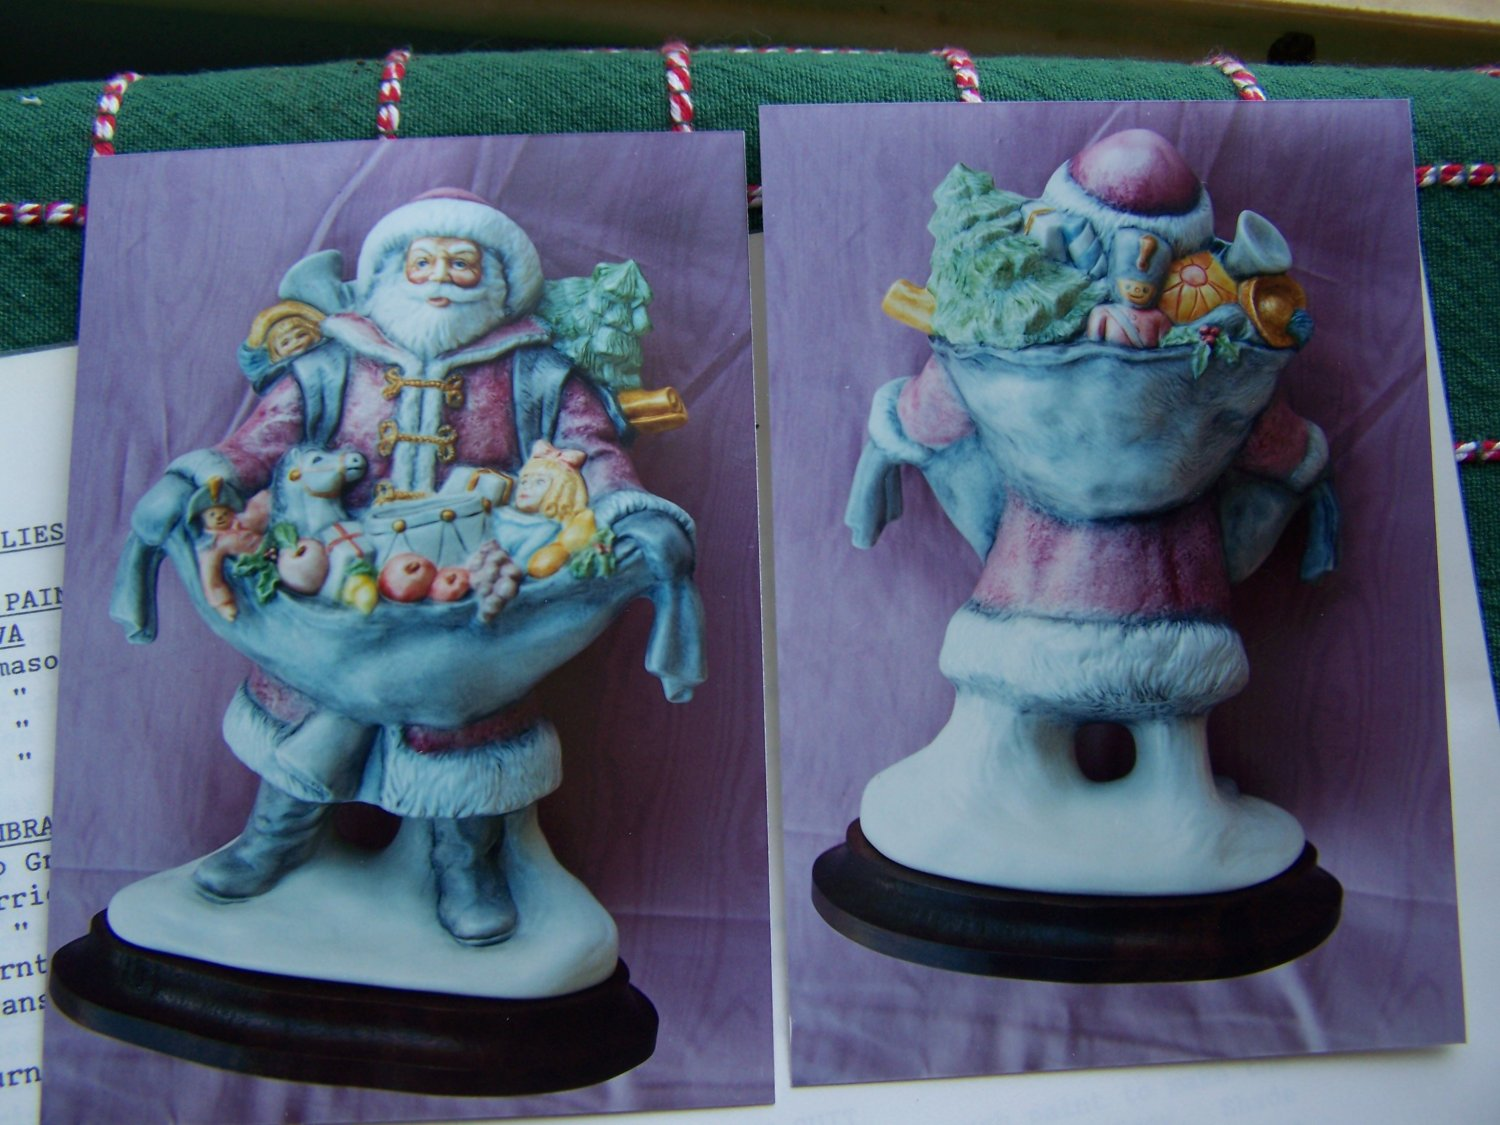 3 Porcelain Figurines Christmas Painting Instructions Santa with Kittens Toys Mr Mrs Santa Mistletoe